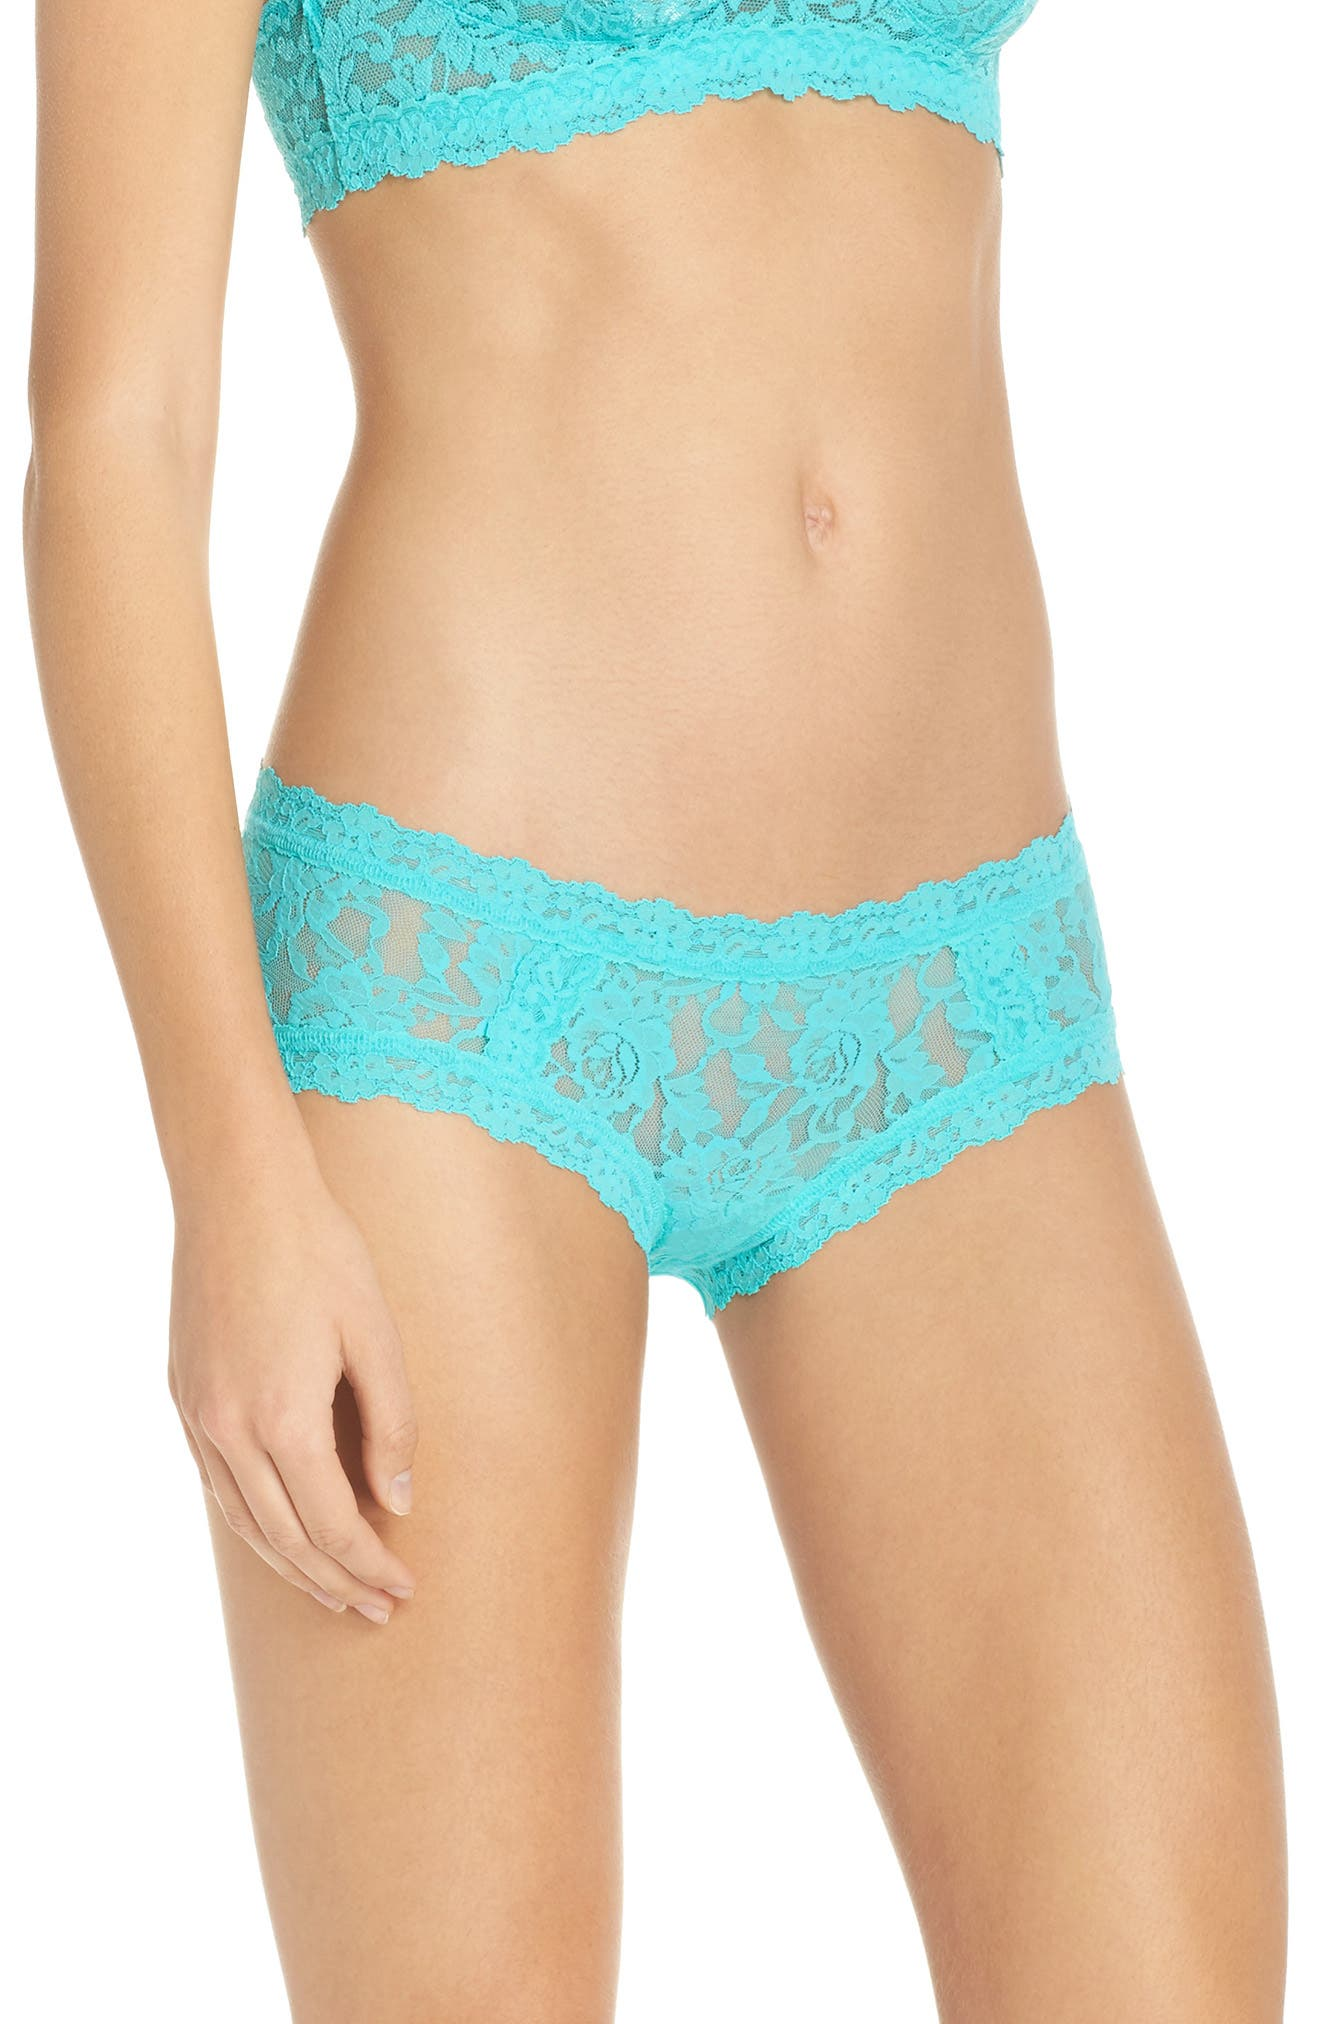 Floral Stretch Lace Girlkini,                             Alternate thumbnail 9, color,